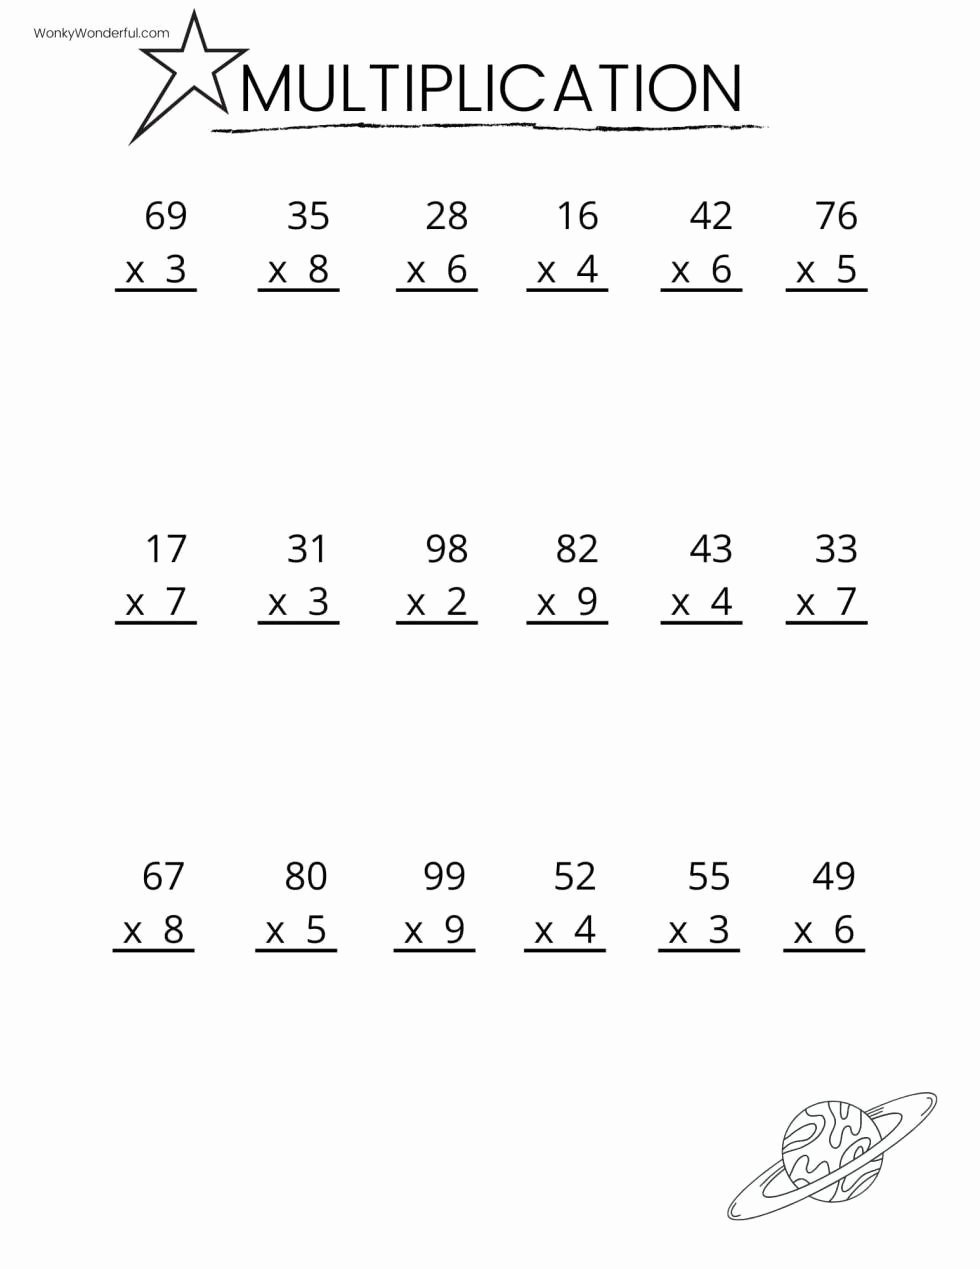 Free 4th Grade Multiplication Worksheets Fresh Free Printable Multiplication Worksheets Wonkywonderful